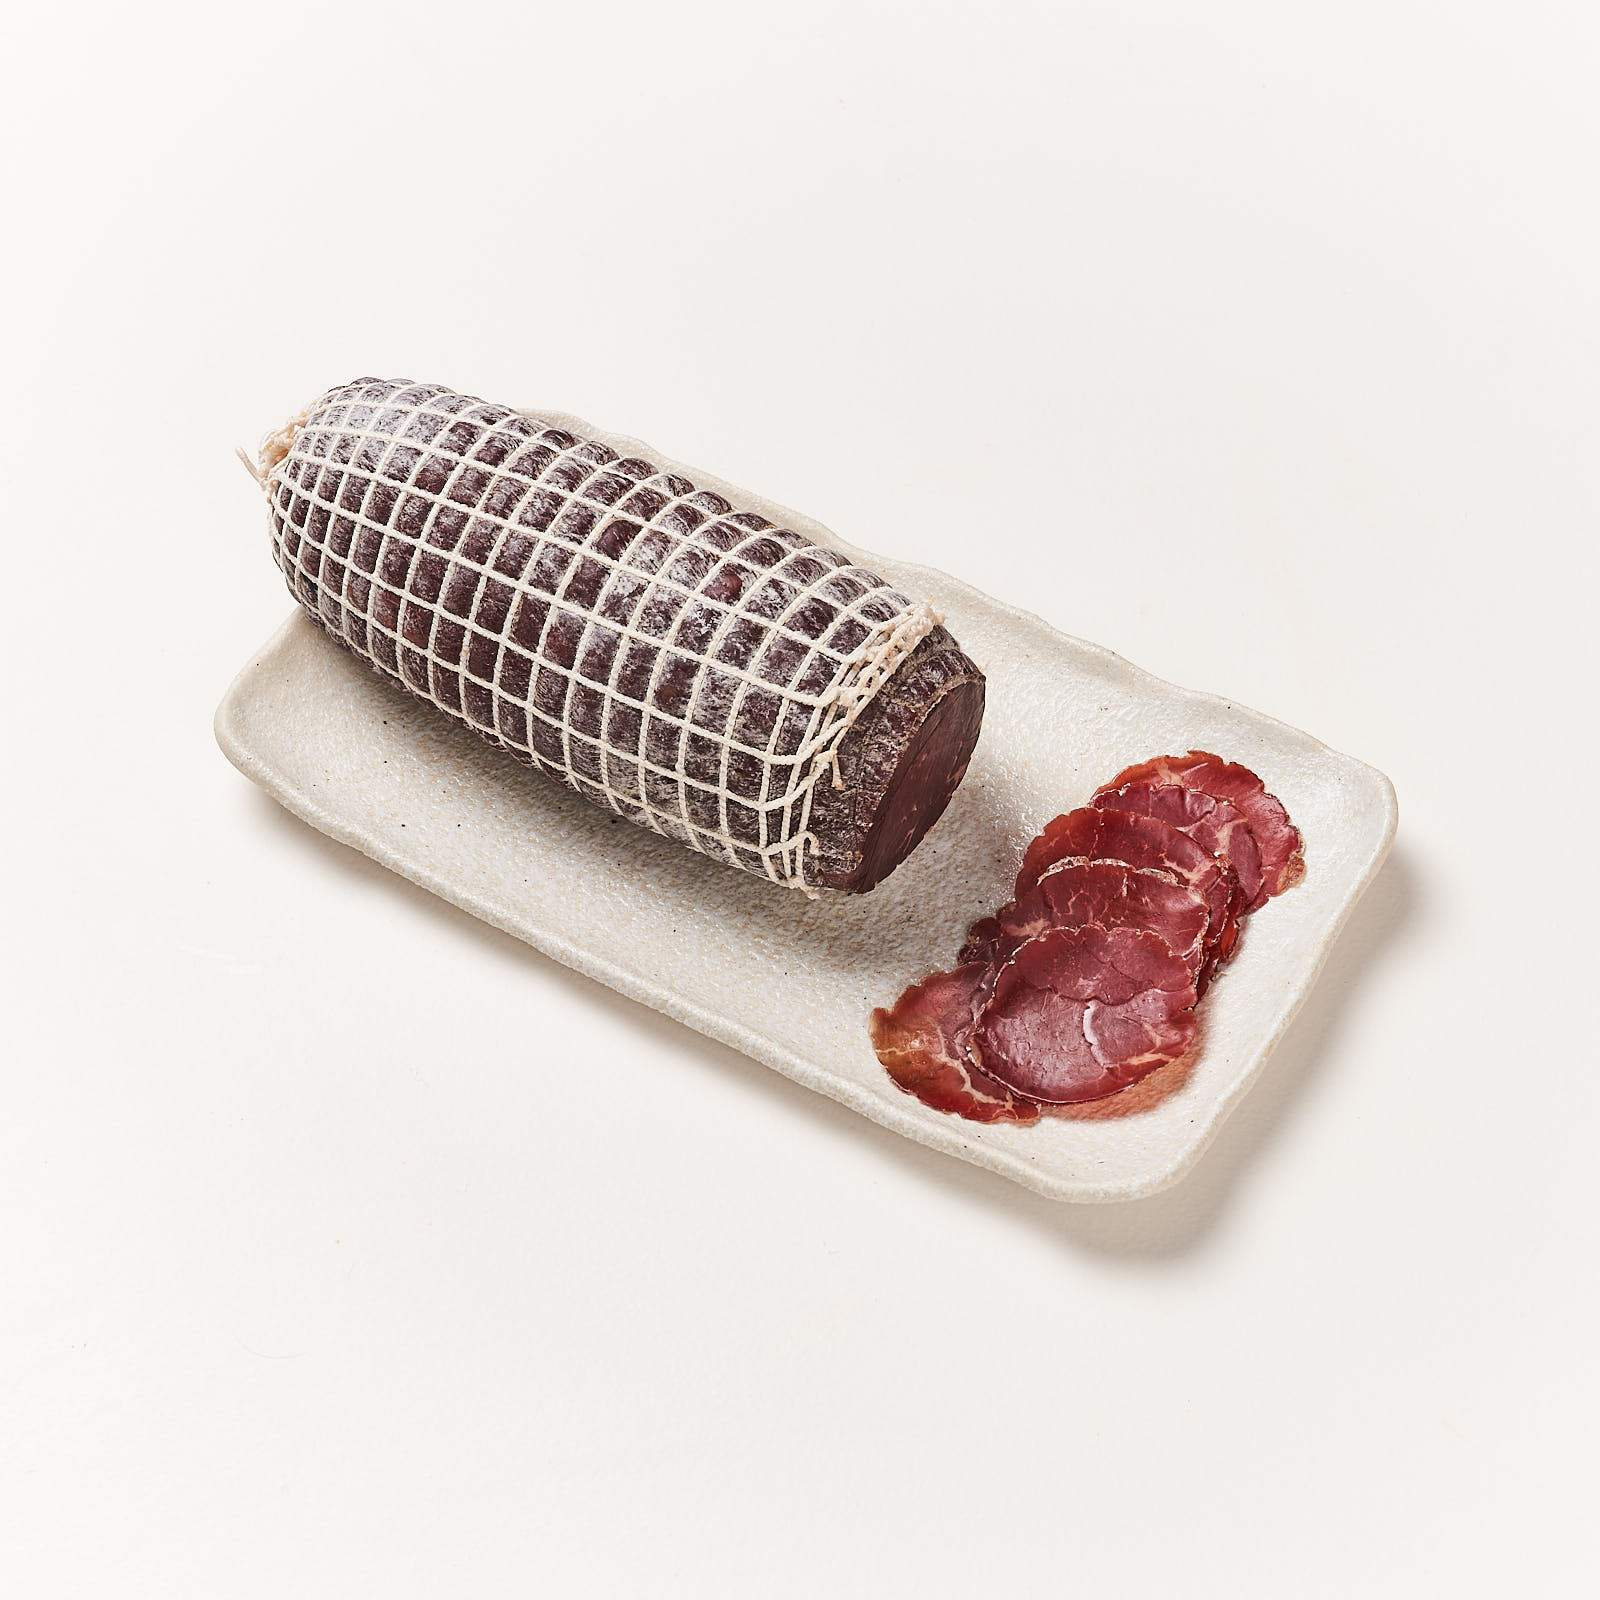 New to Hagen's : Small Batch Charcuterie